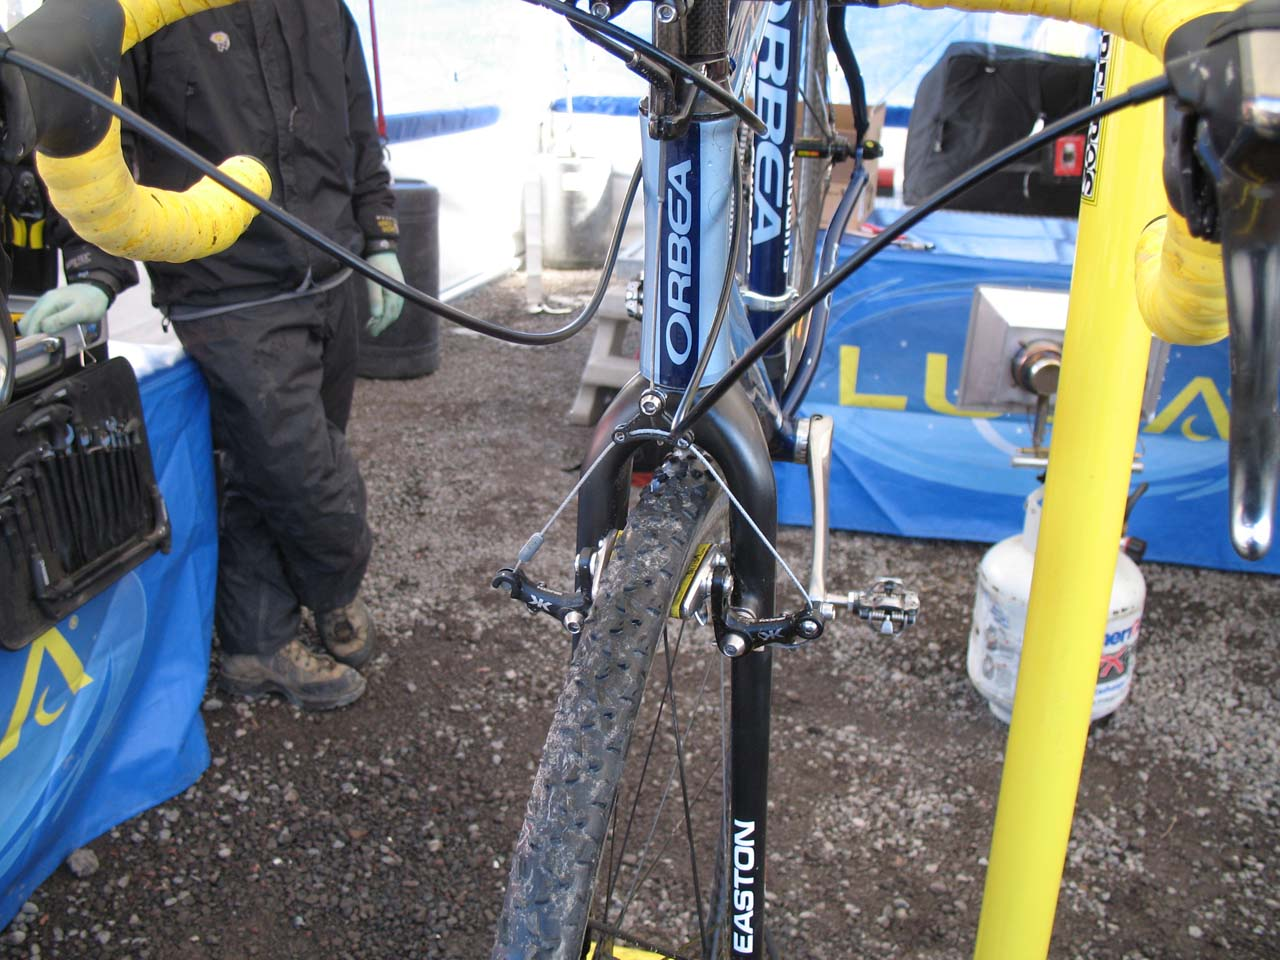 Dunlap runs the Kore brakes that have been seen on other pro bikes this season. ? Cyclocross Magazine